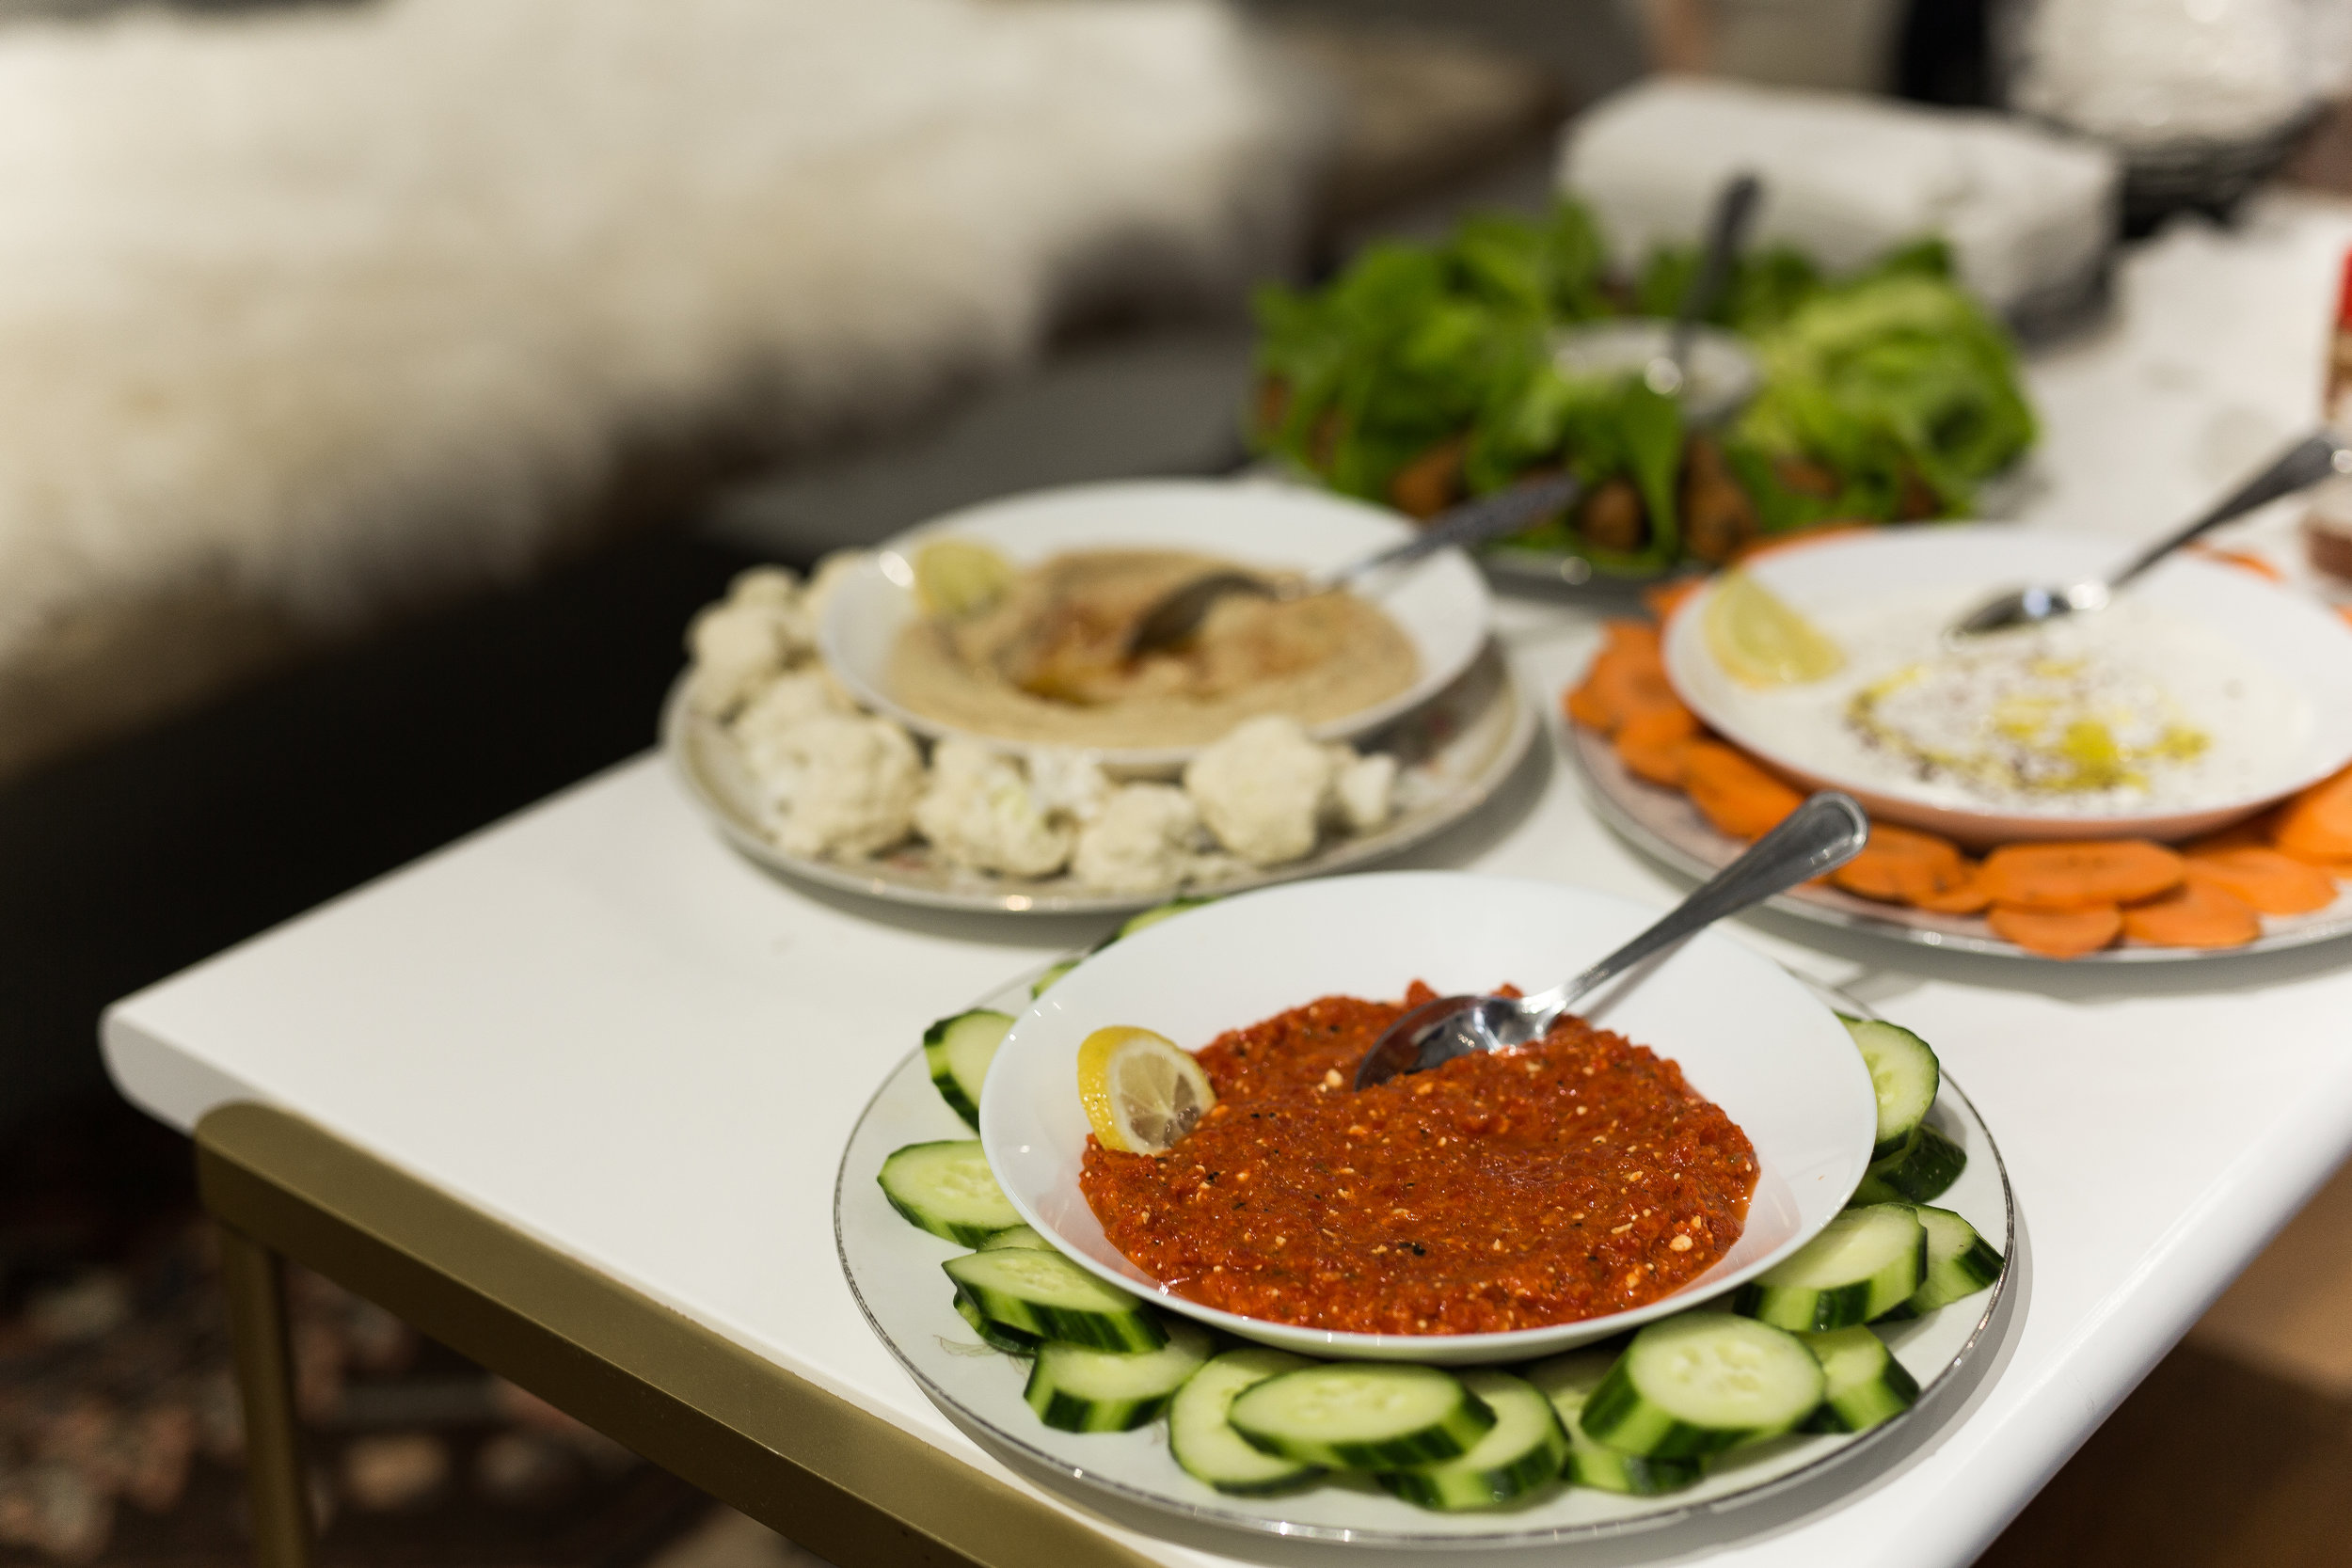 There is always enough for everyone to get filled on fresh veg and pita, with all the flavorful dips!!!!